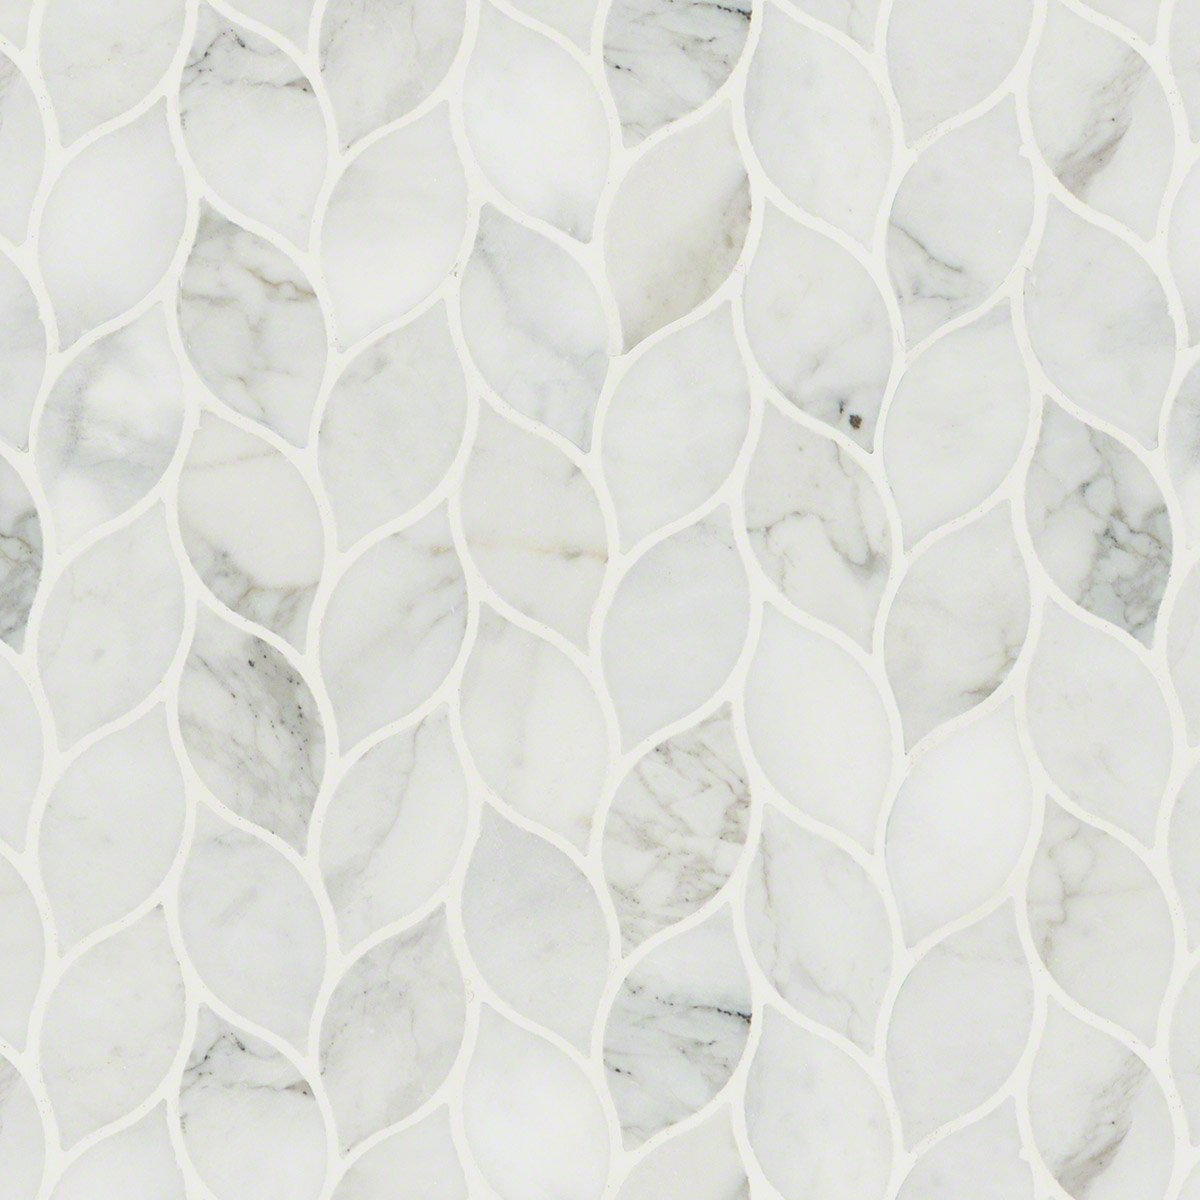 Calacatta Blanco Pattern Polished Marble Mosaic Tile